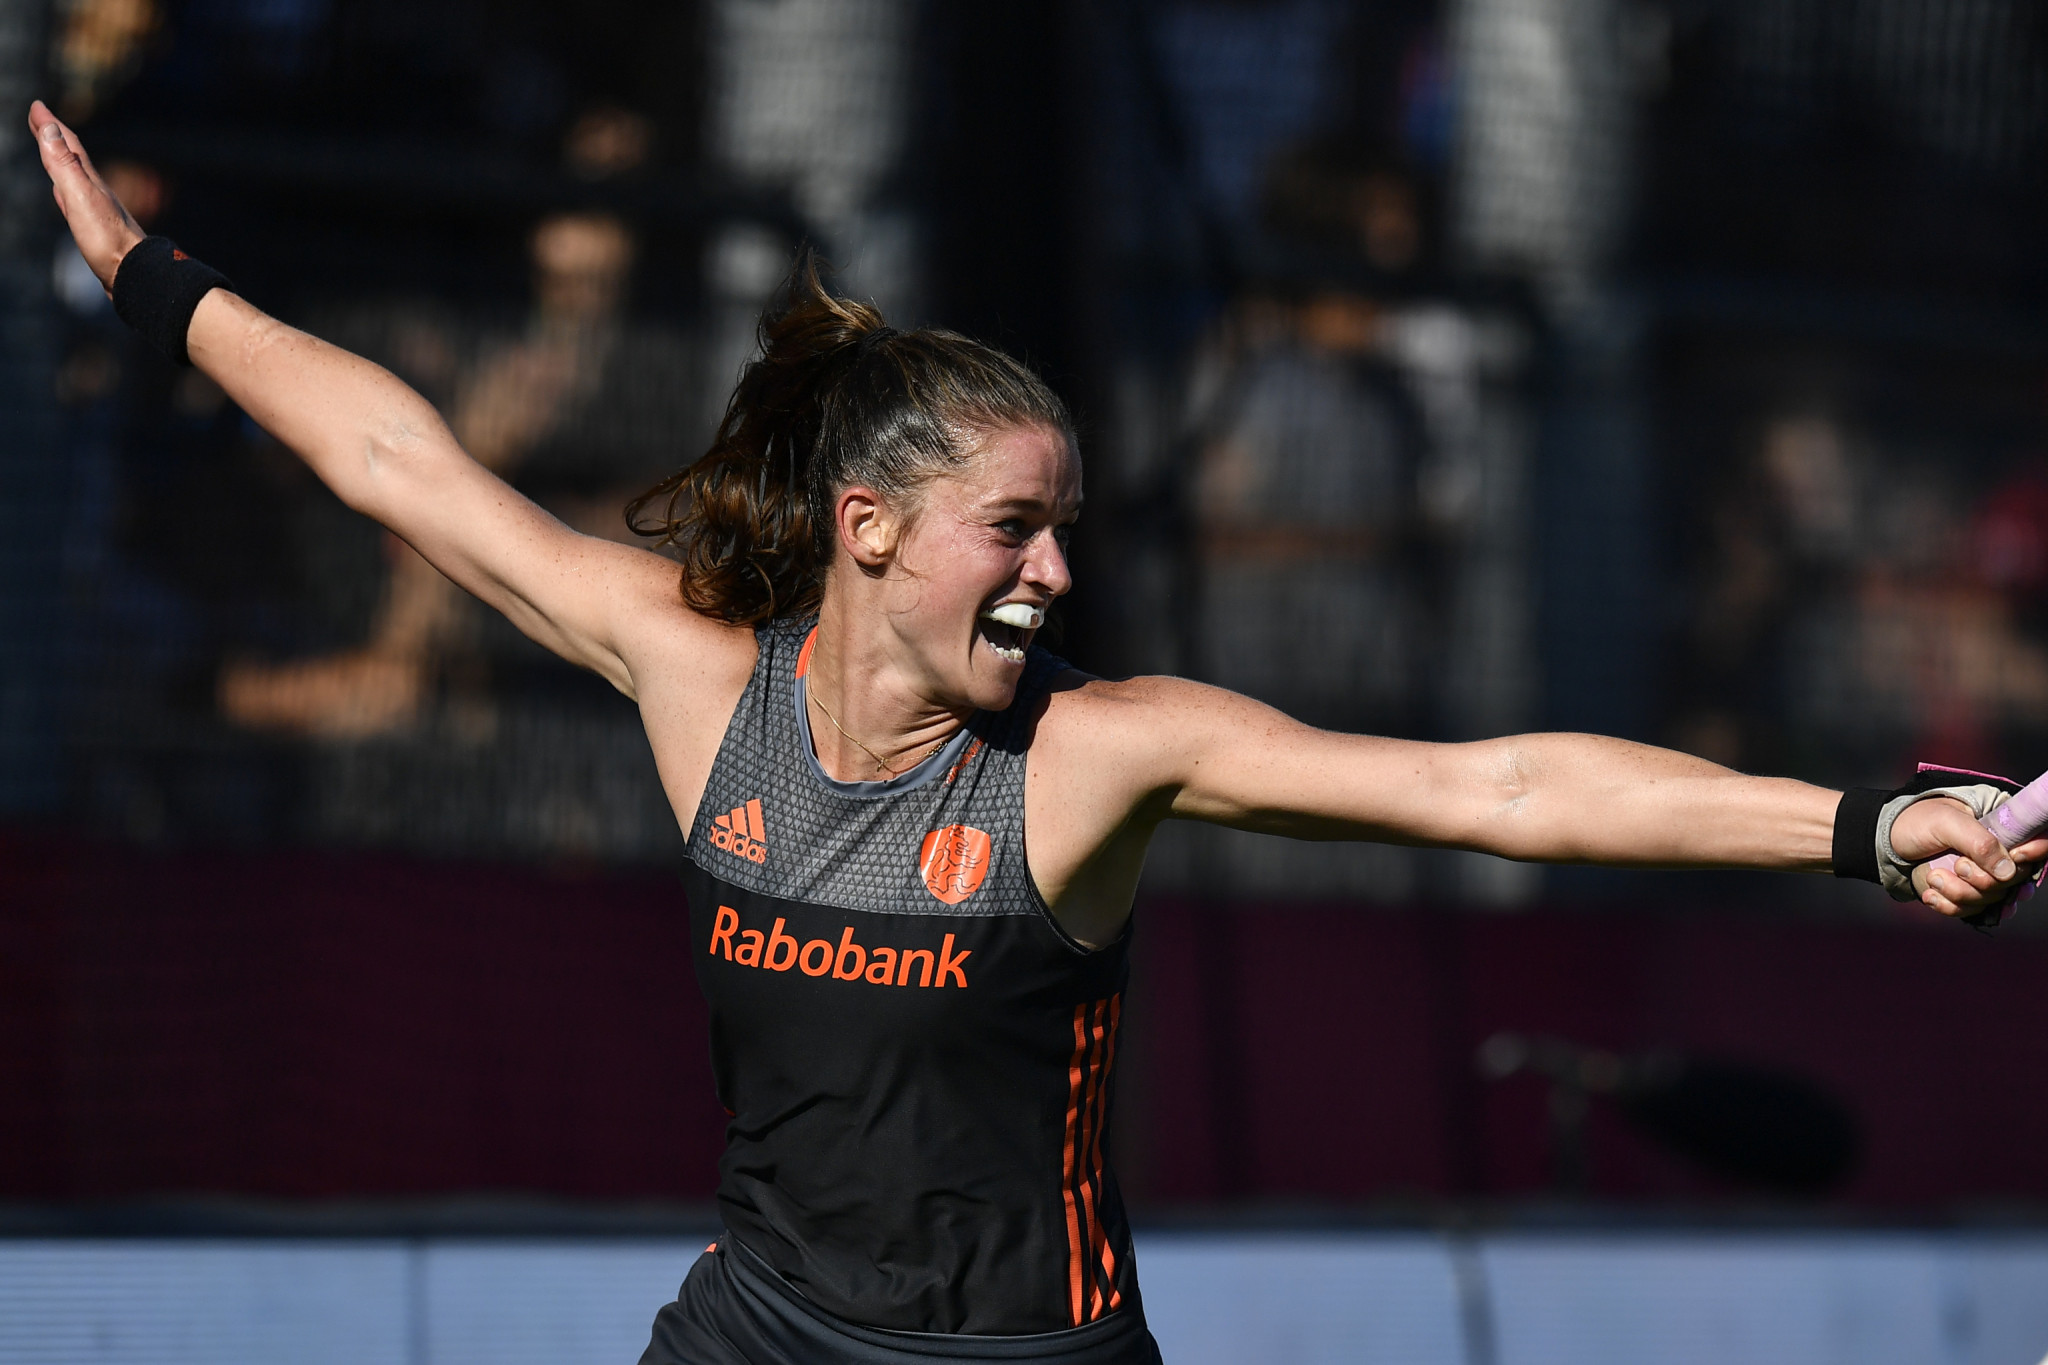 The Netherlands start Hockey Pro League title defence with 2-0 win versus Belgium